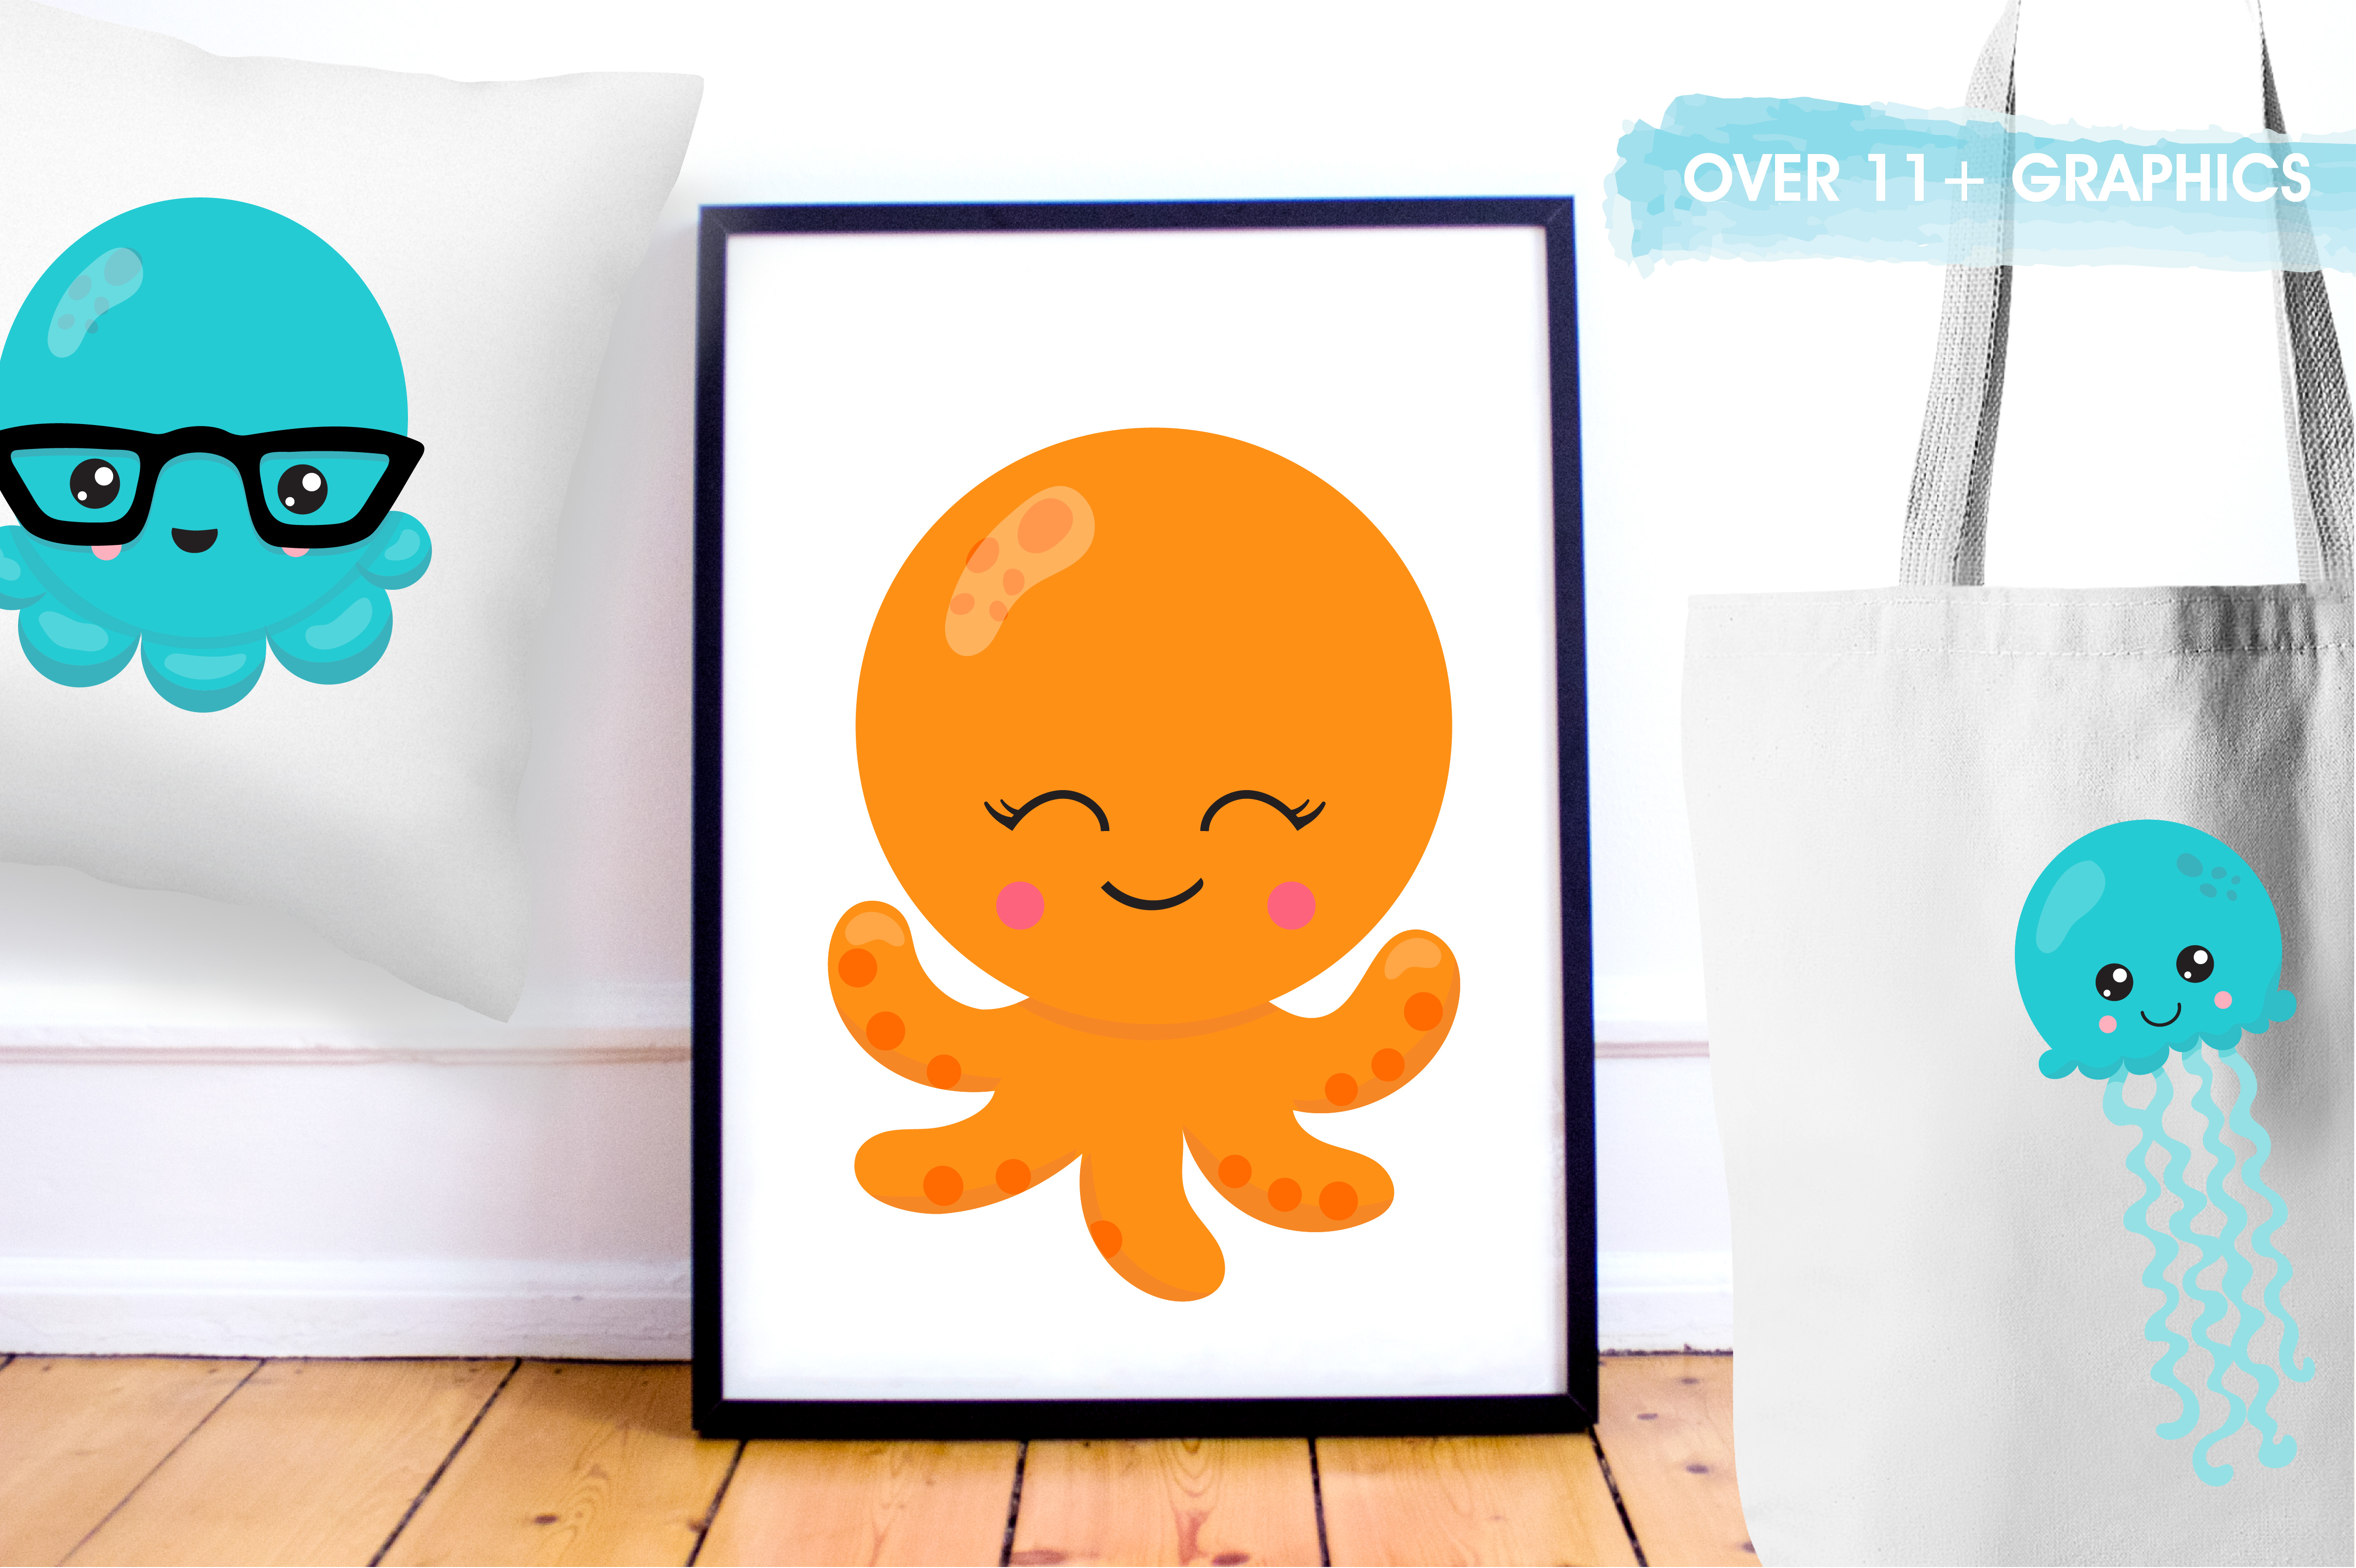 Hipster octopus emoji graphics and illustrations example image 5